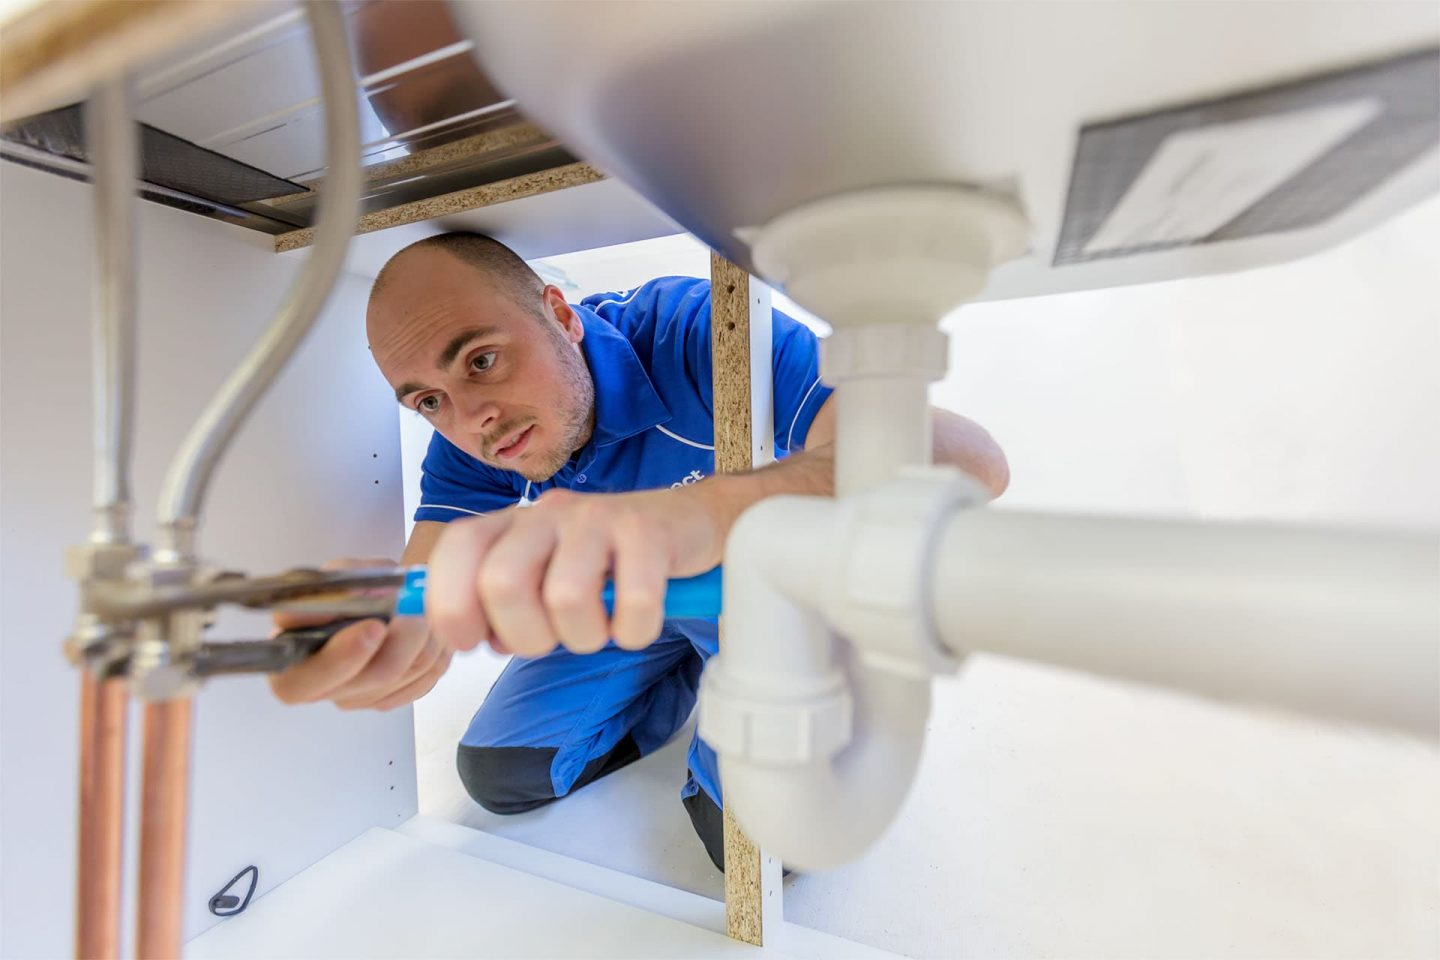 Aspect plumbers; plumbing services local to you in London